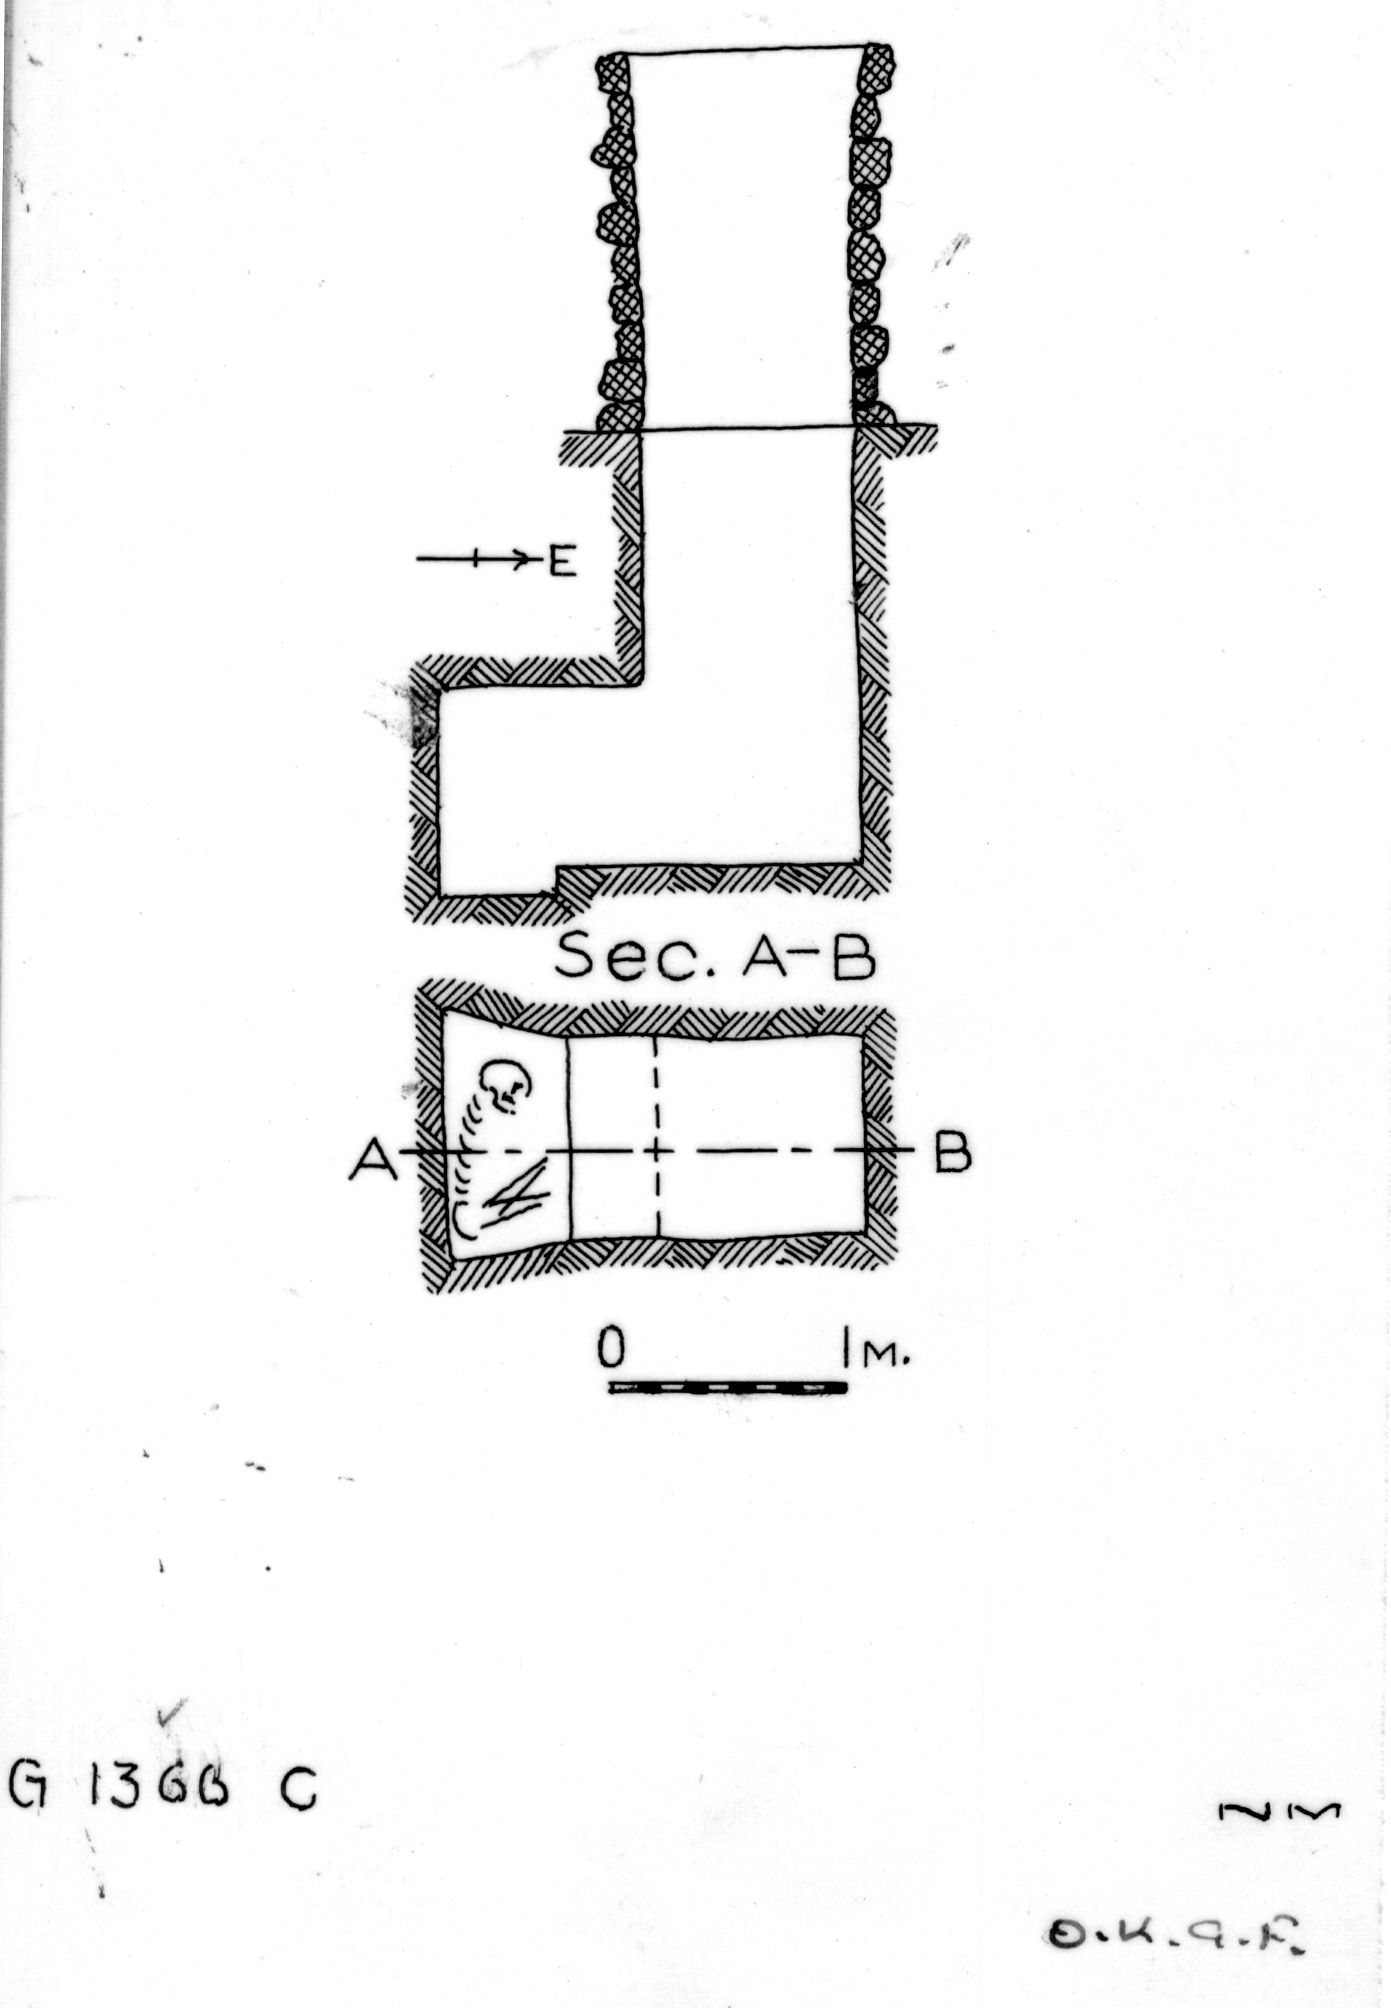 Maps and plans: G 1366, Shaft C